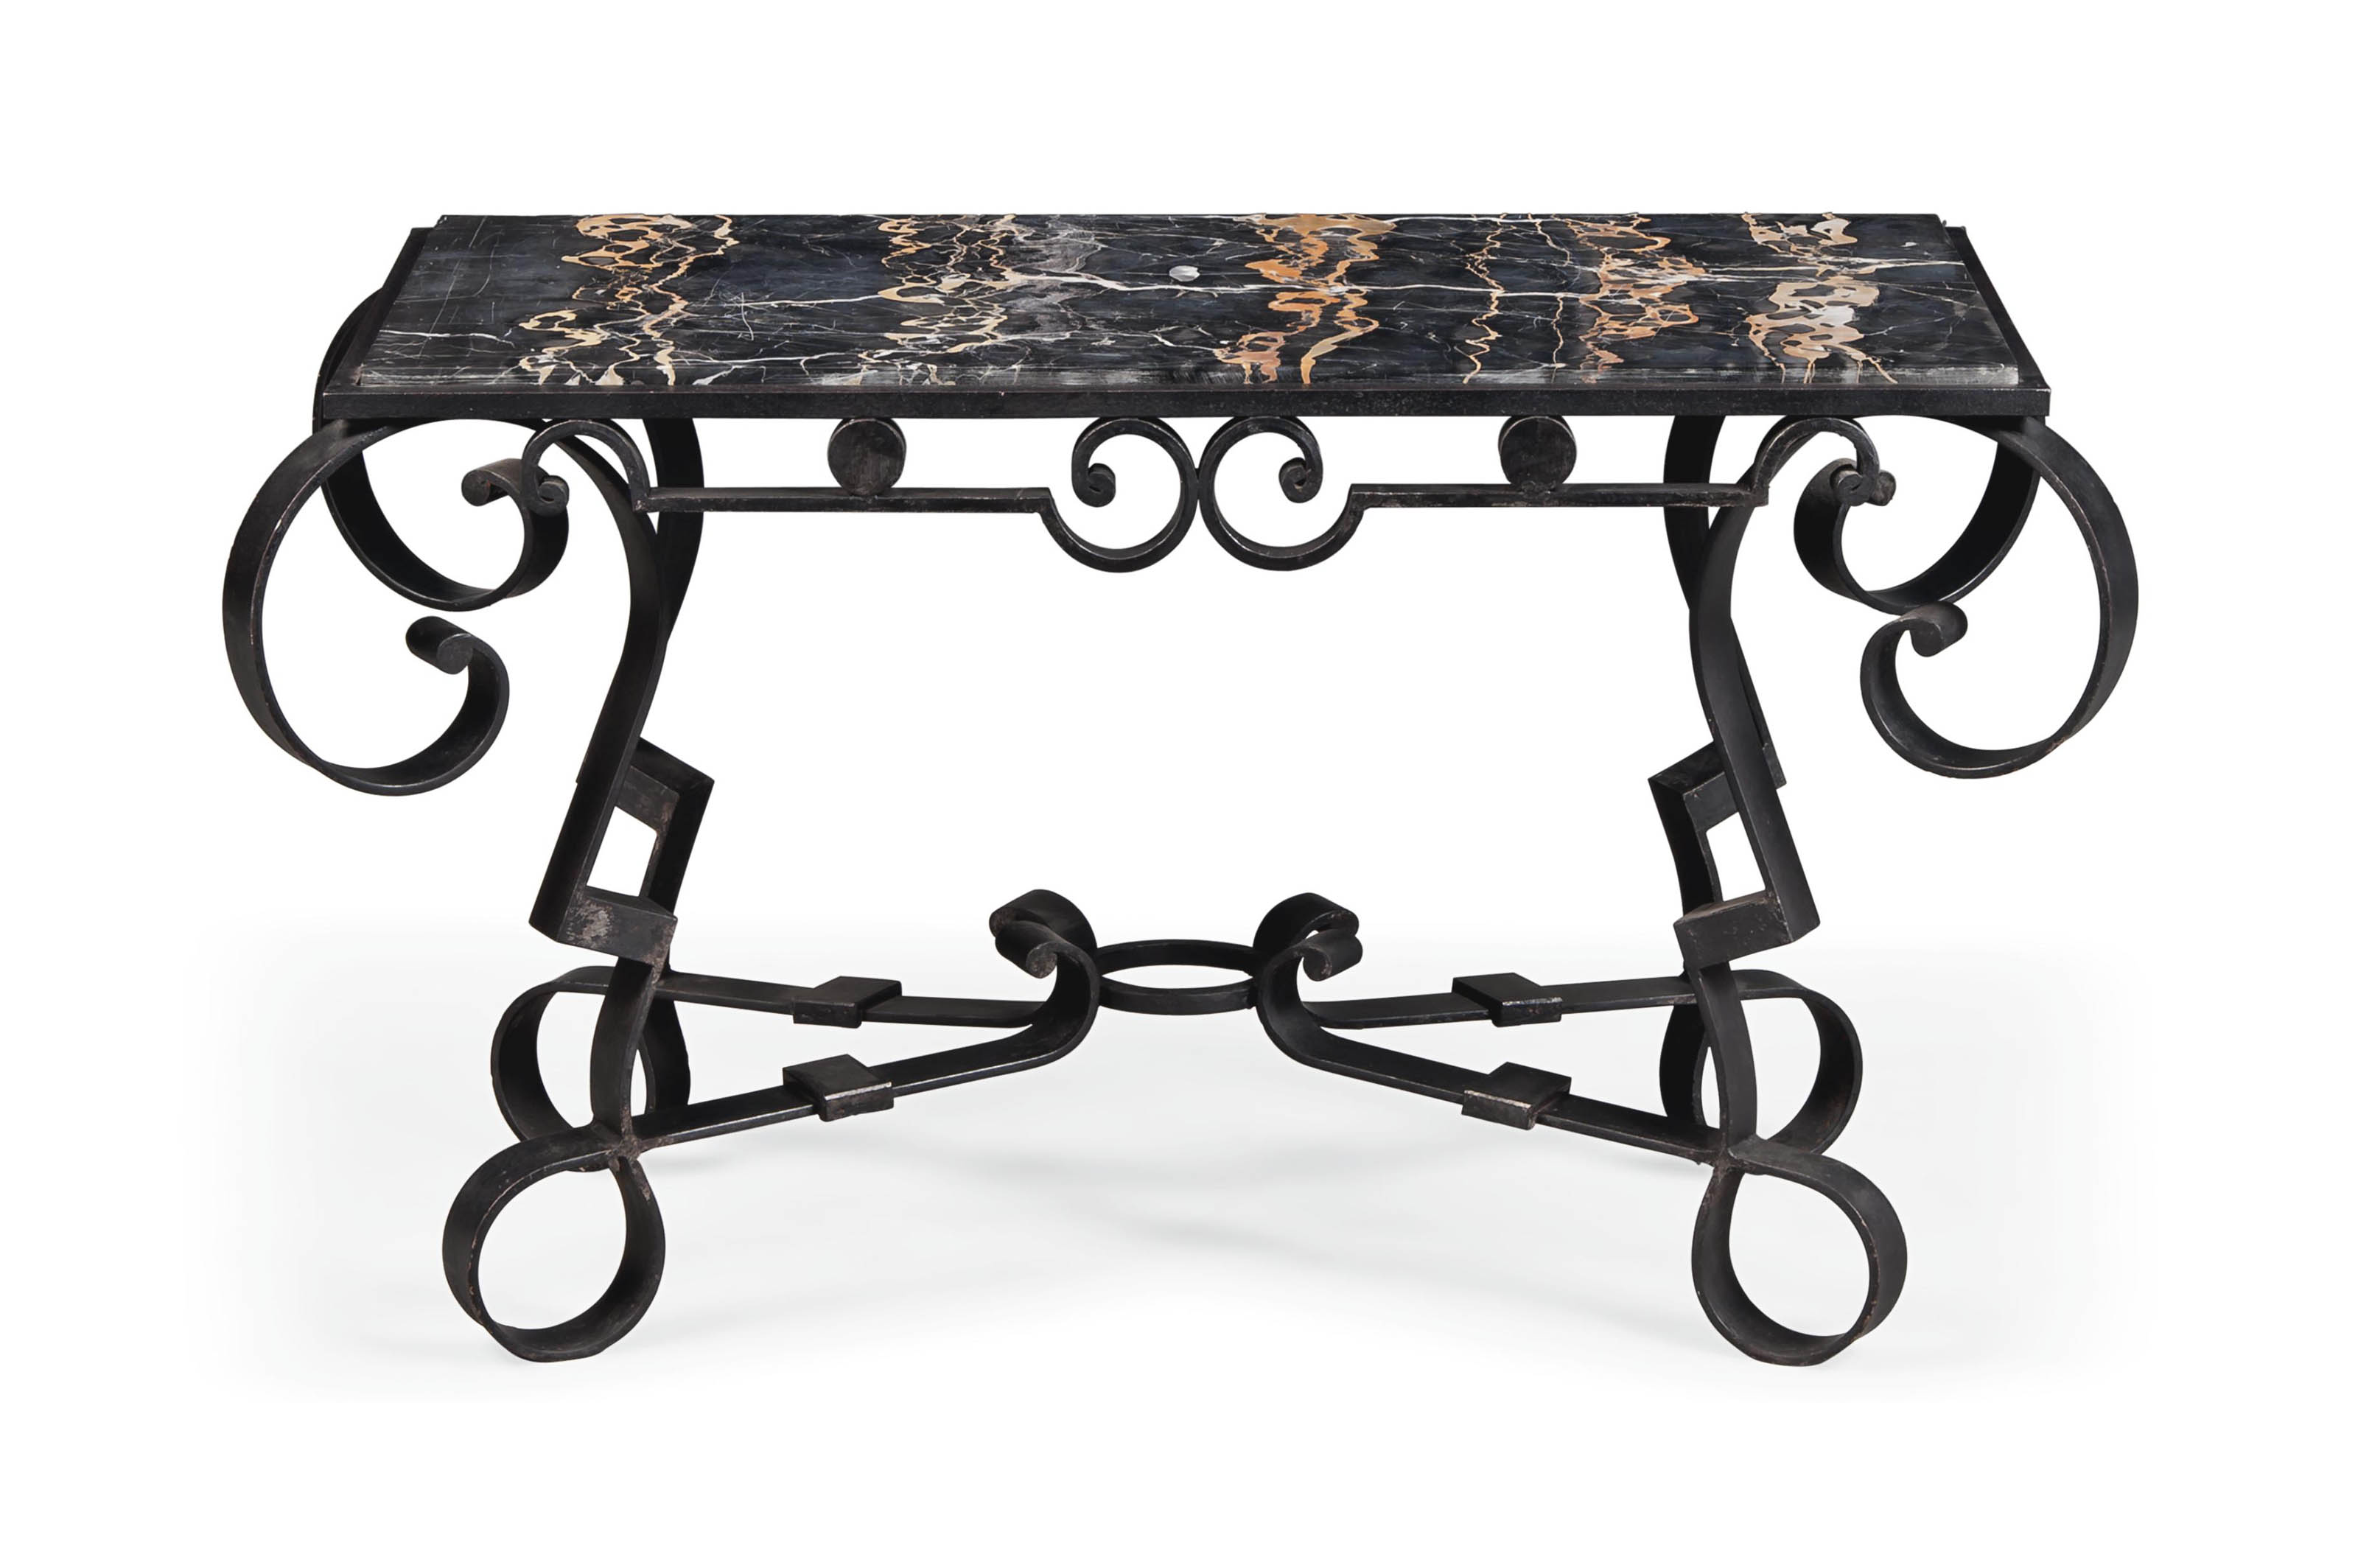 AN ART DECO FRENCH WROUGHT-IRON AND MARBLE OCCASIONAL TABLE ATTRIBUTED TO RAYMOND SUBES